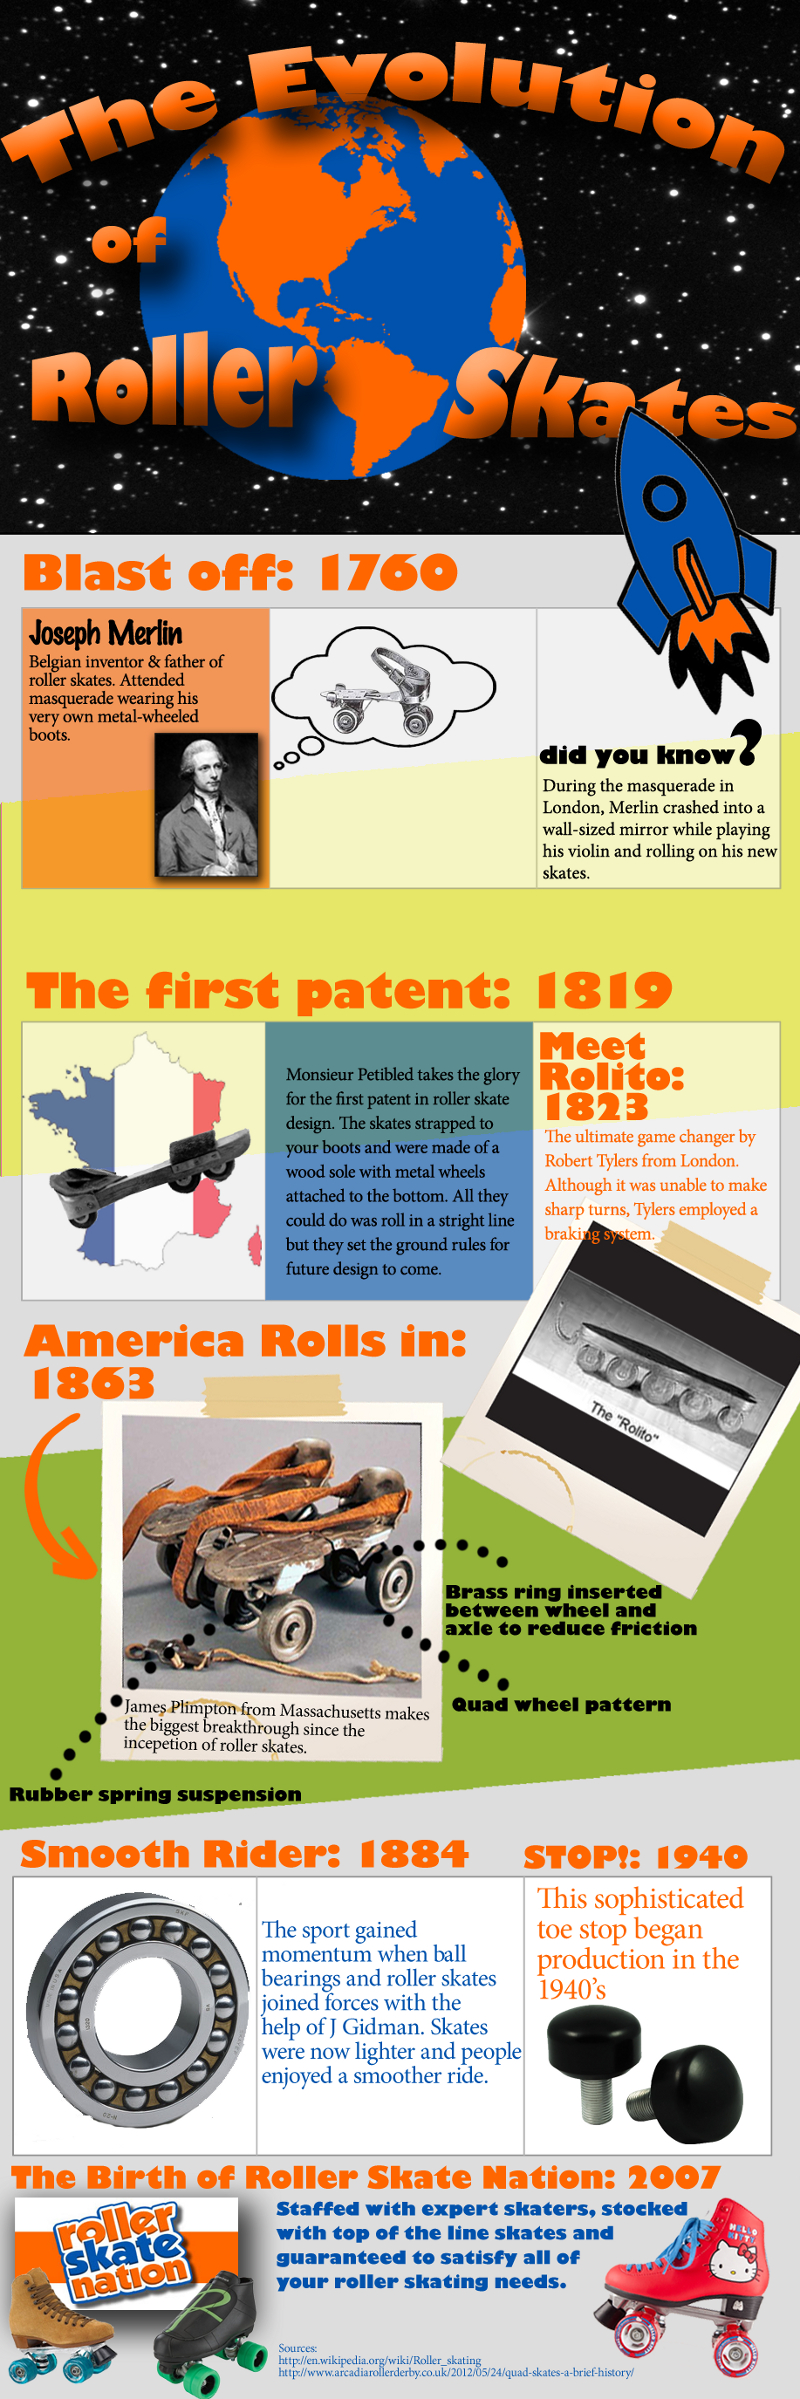 Development of Roller Skates